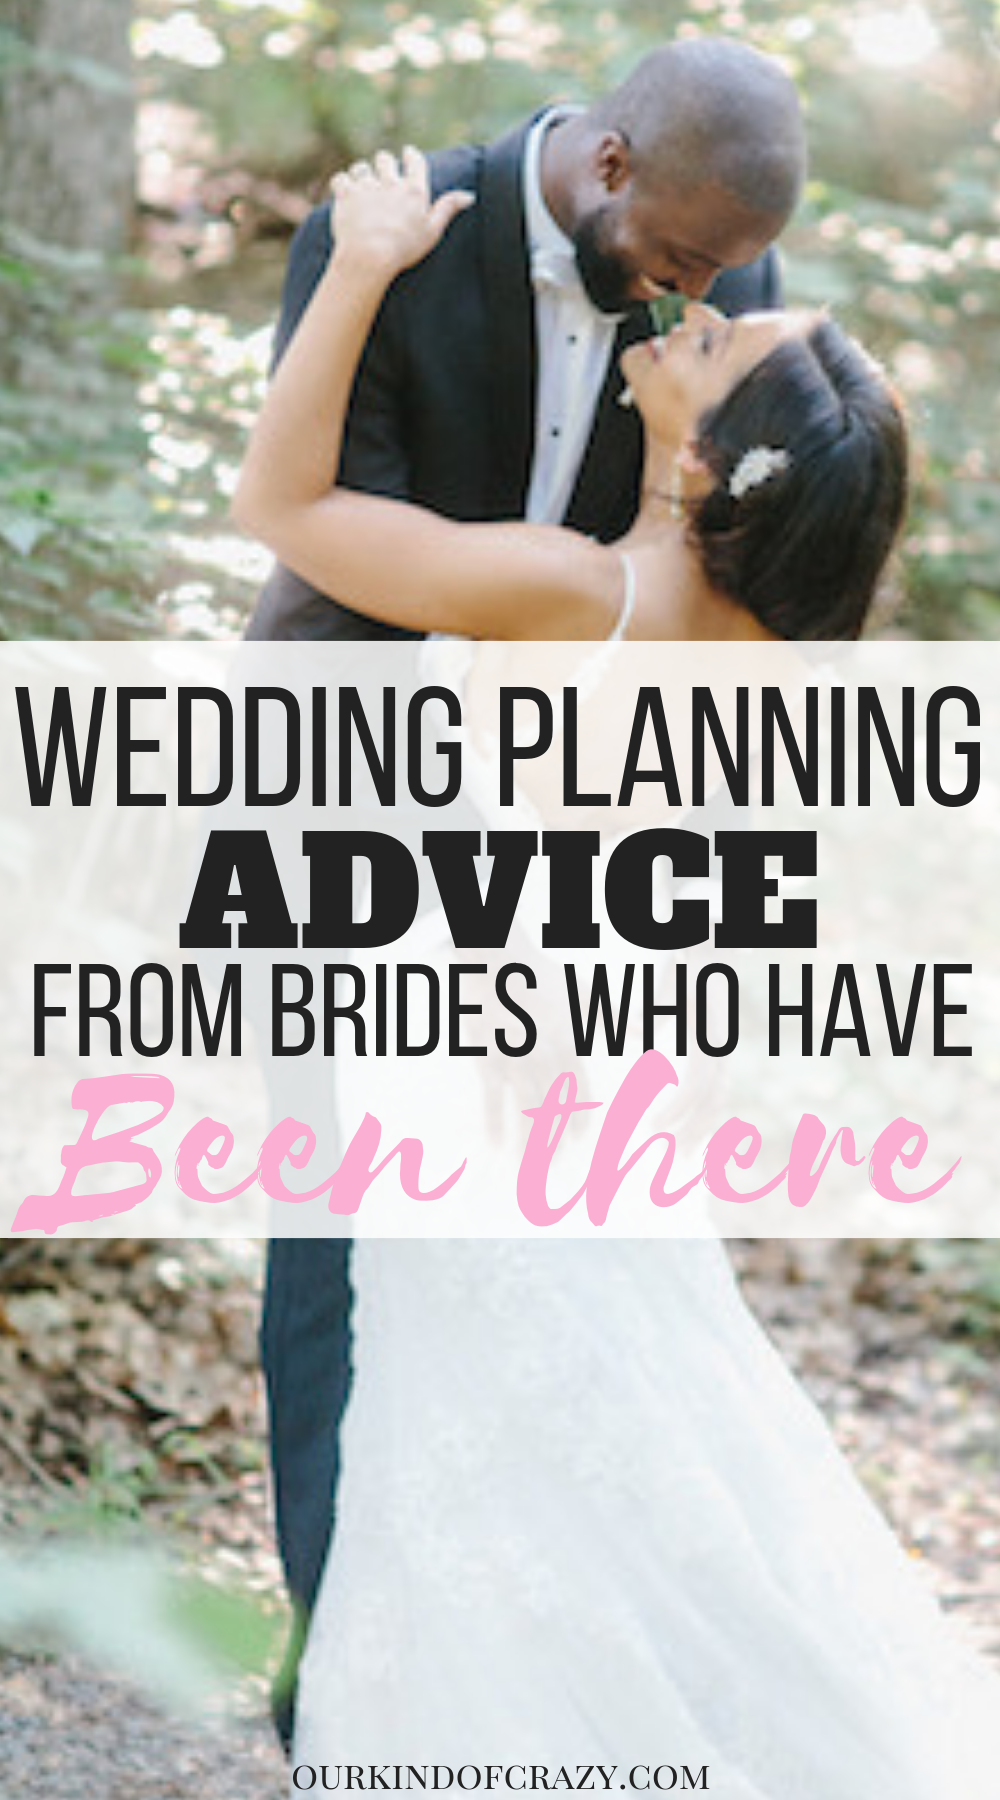 Wedding Planning Tips from Brides who have planned a wedding